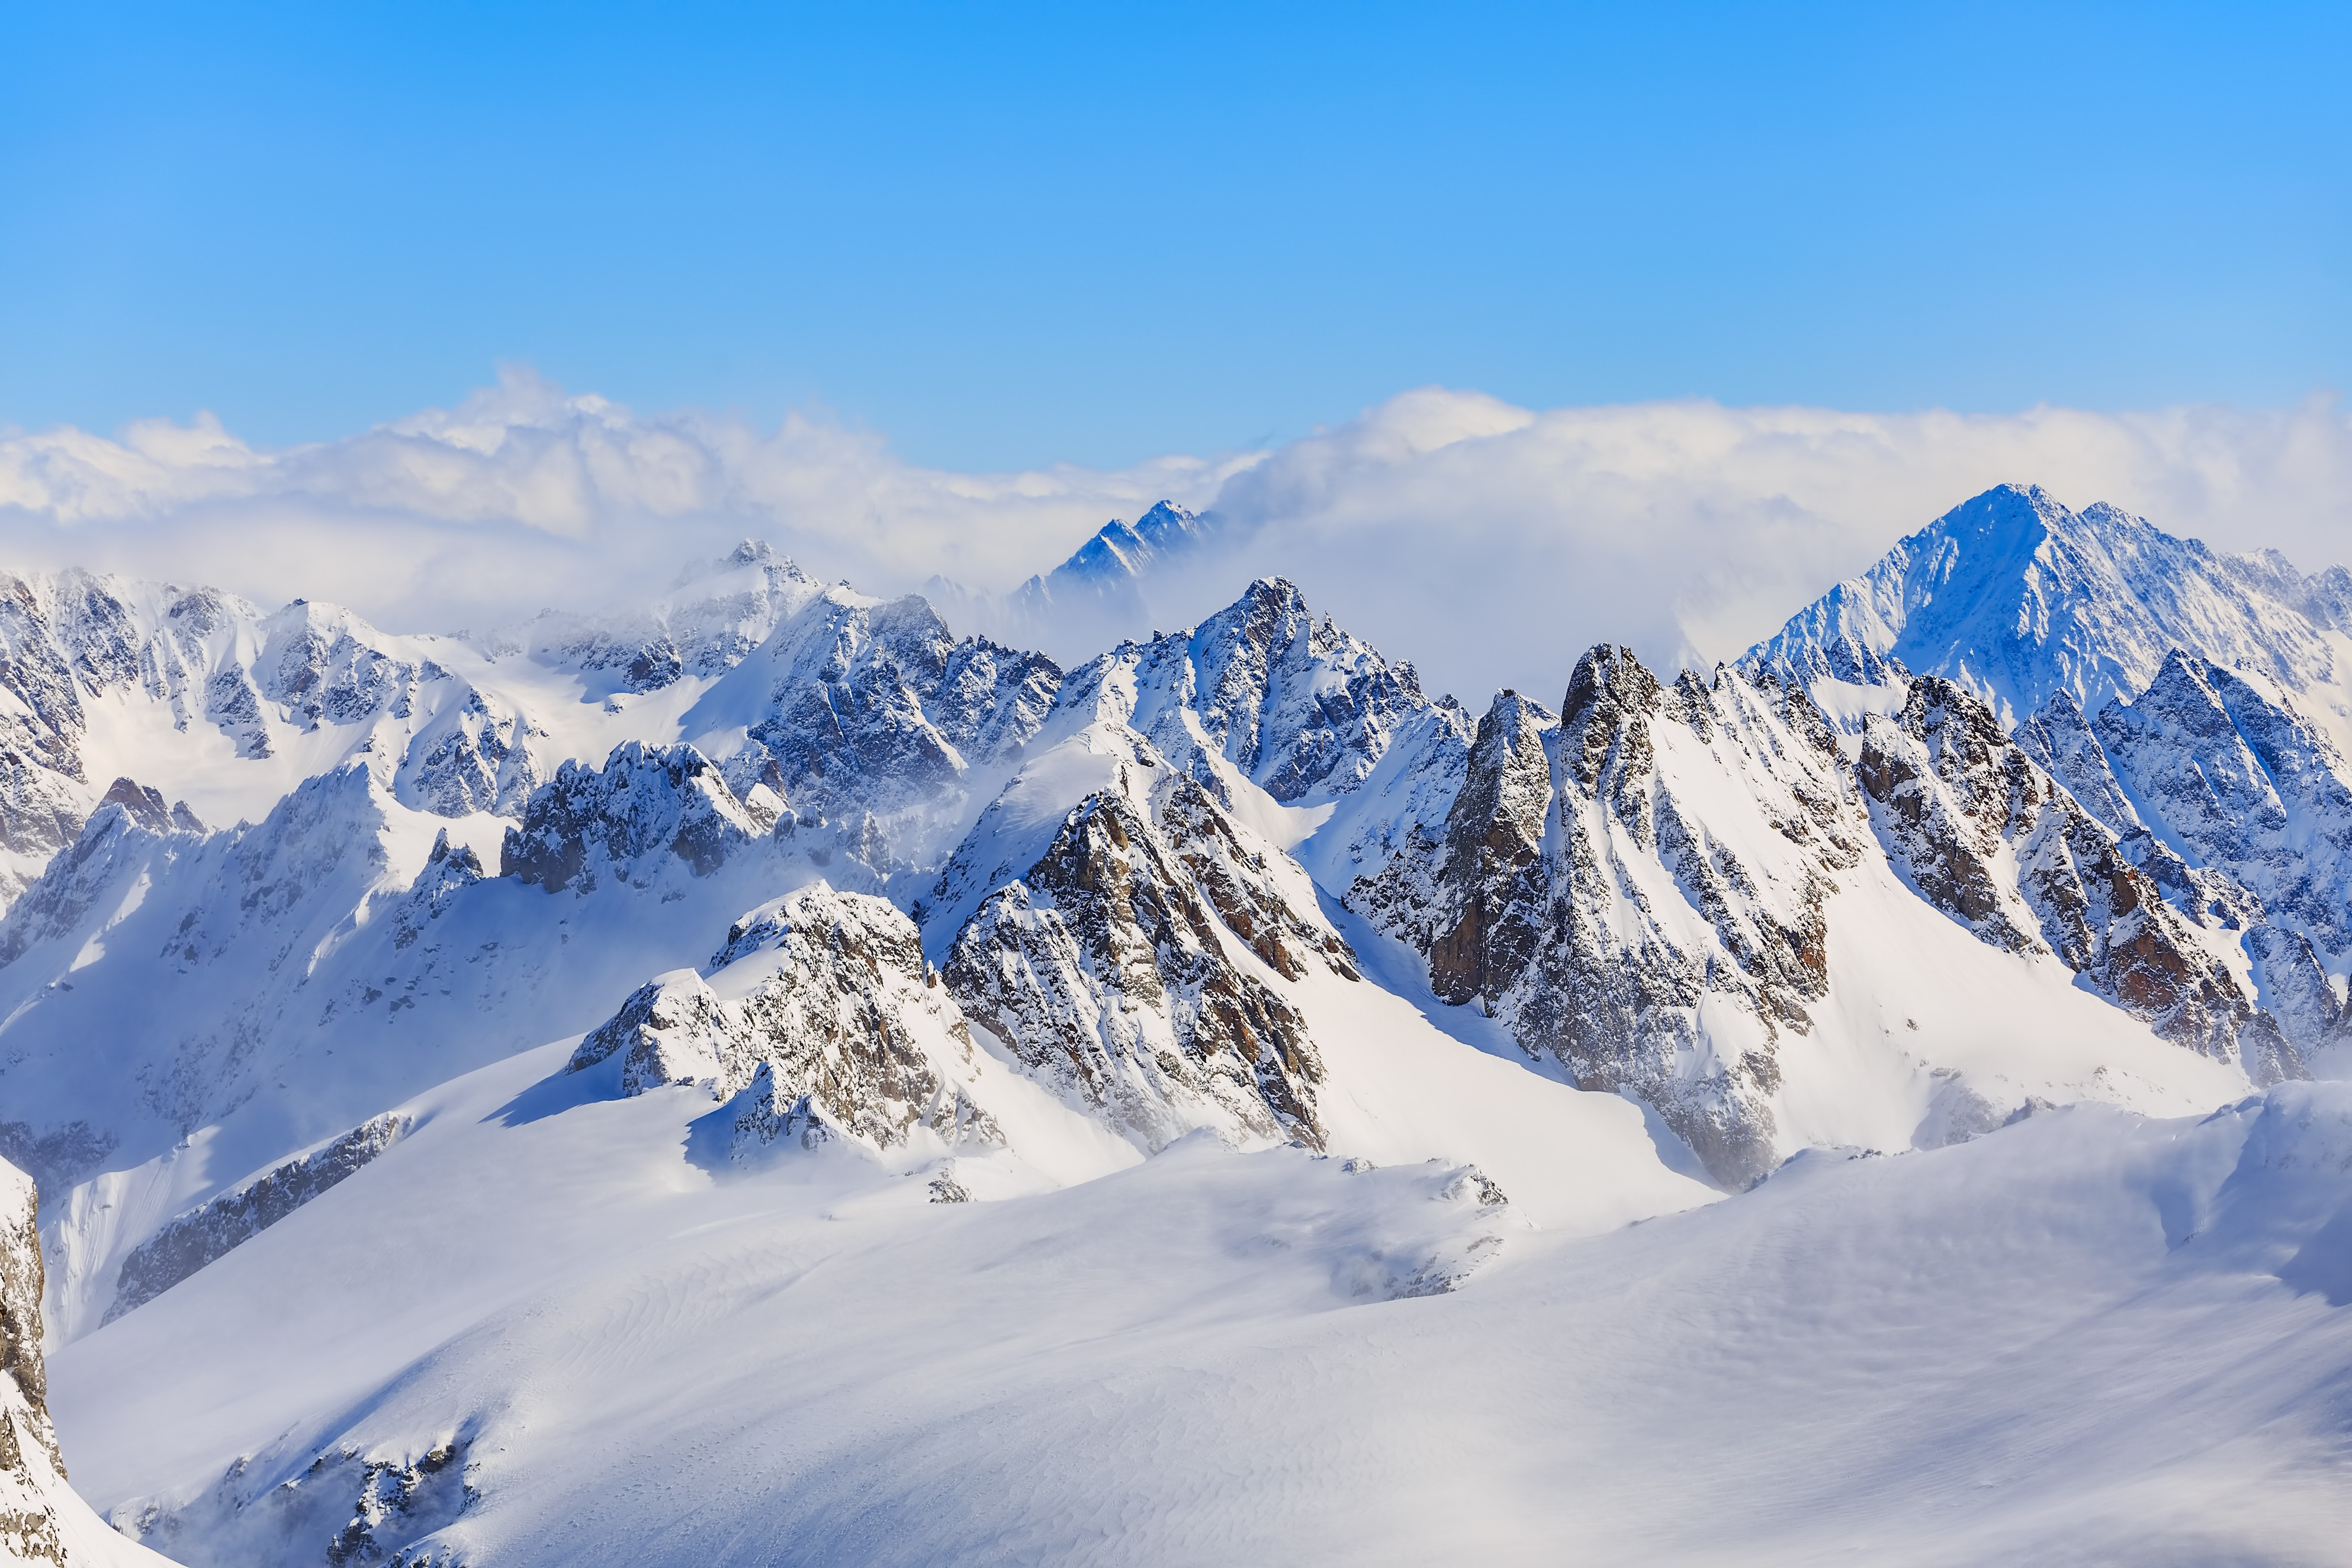 Mountain Ranges Covered in Snow, Slope, Pinnacle, Resort, Rocky, HQ Photo